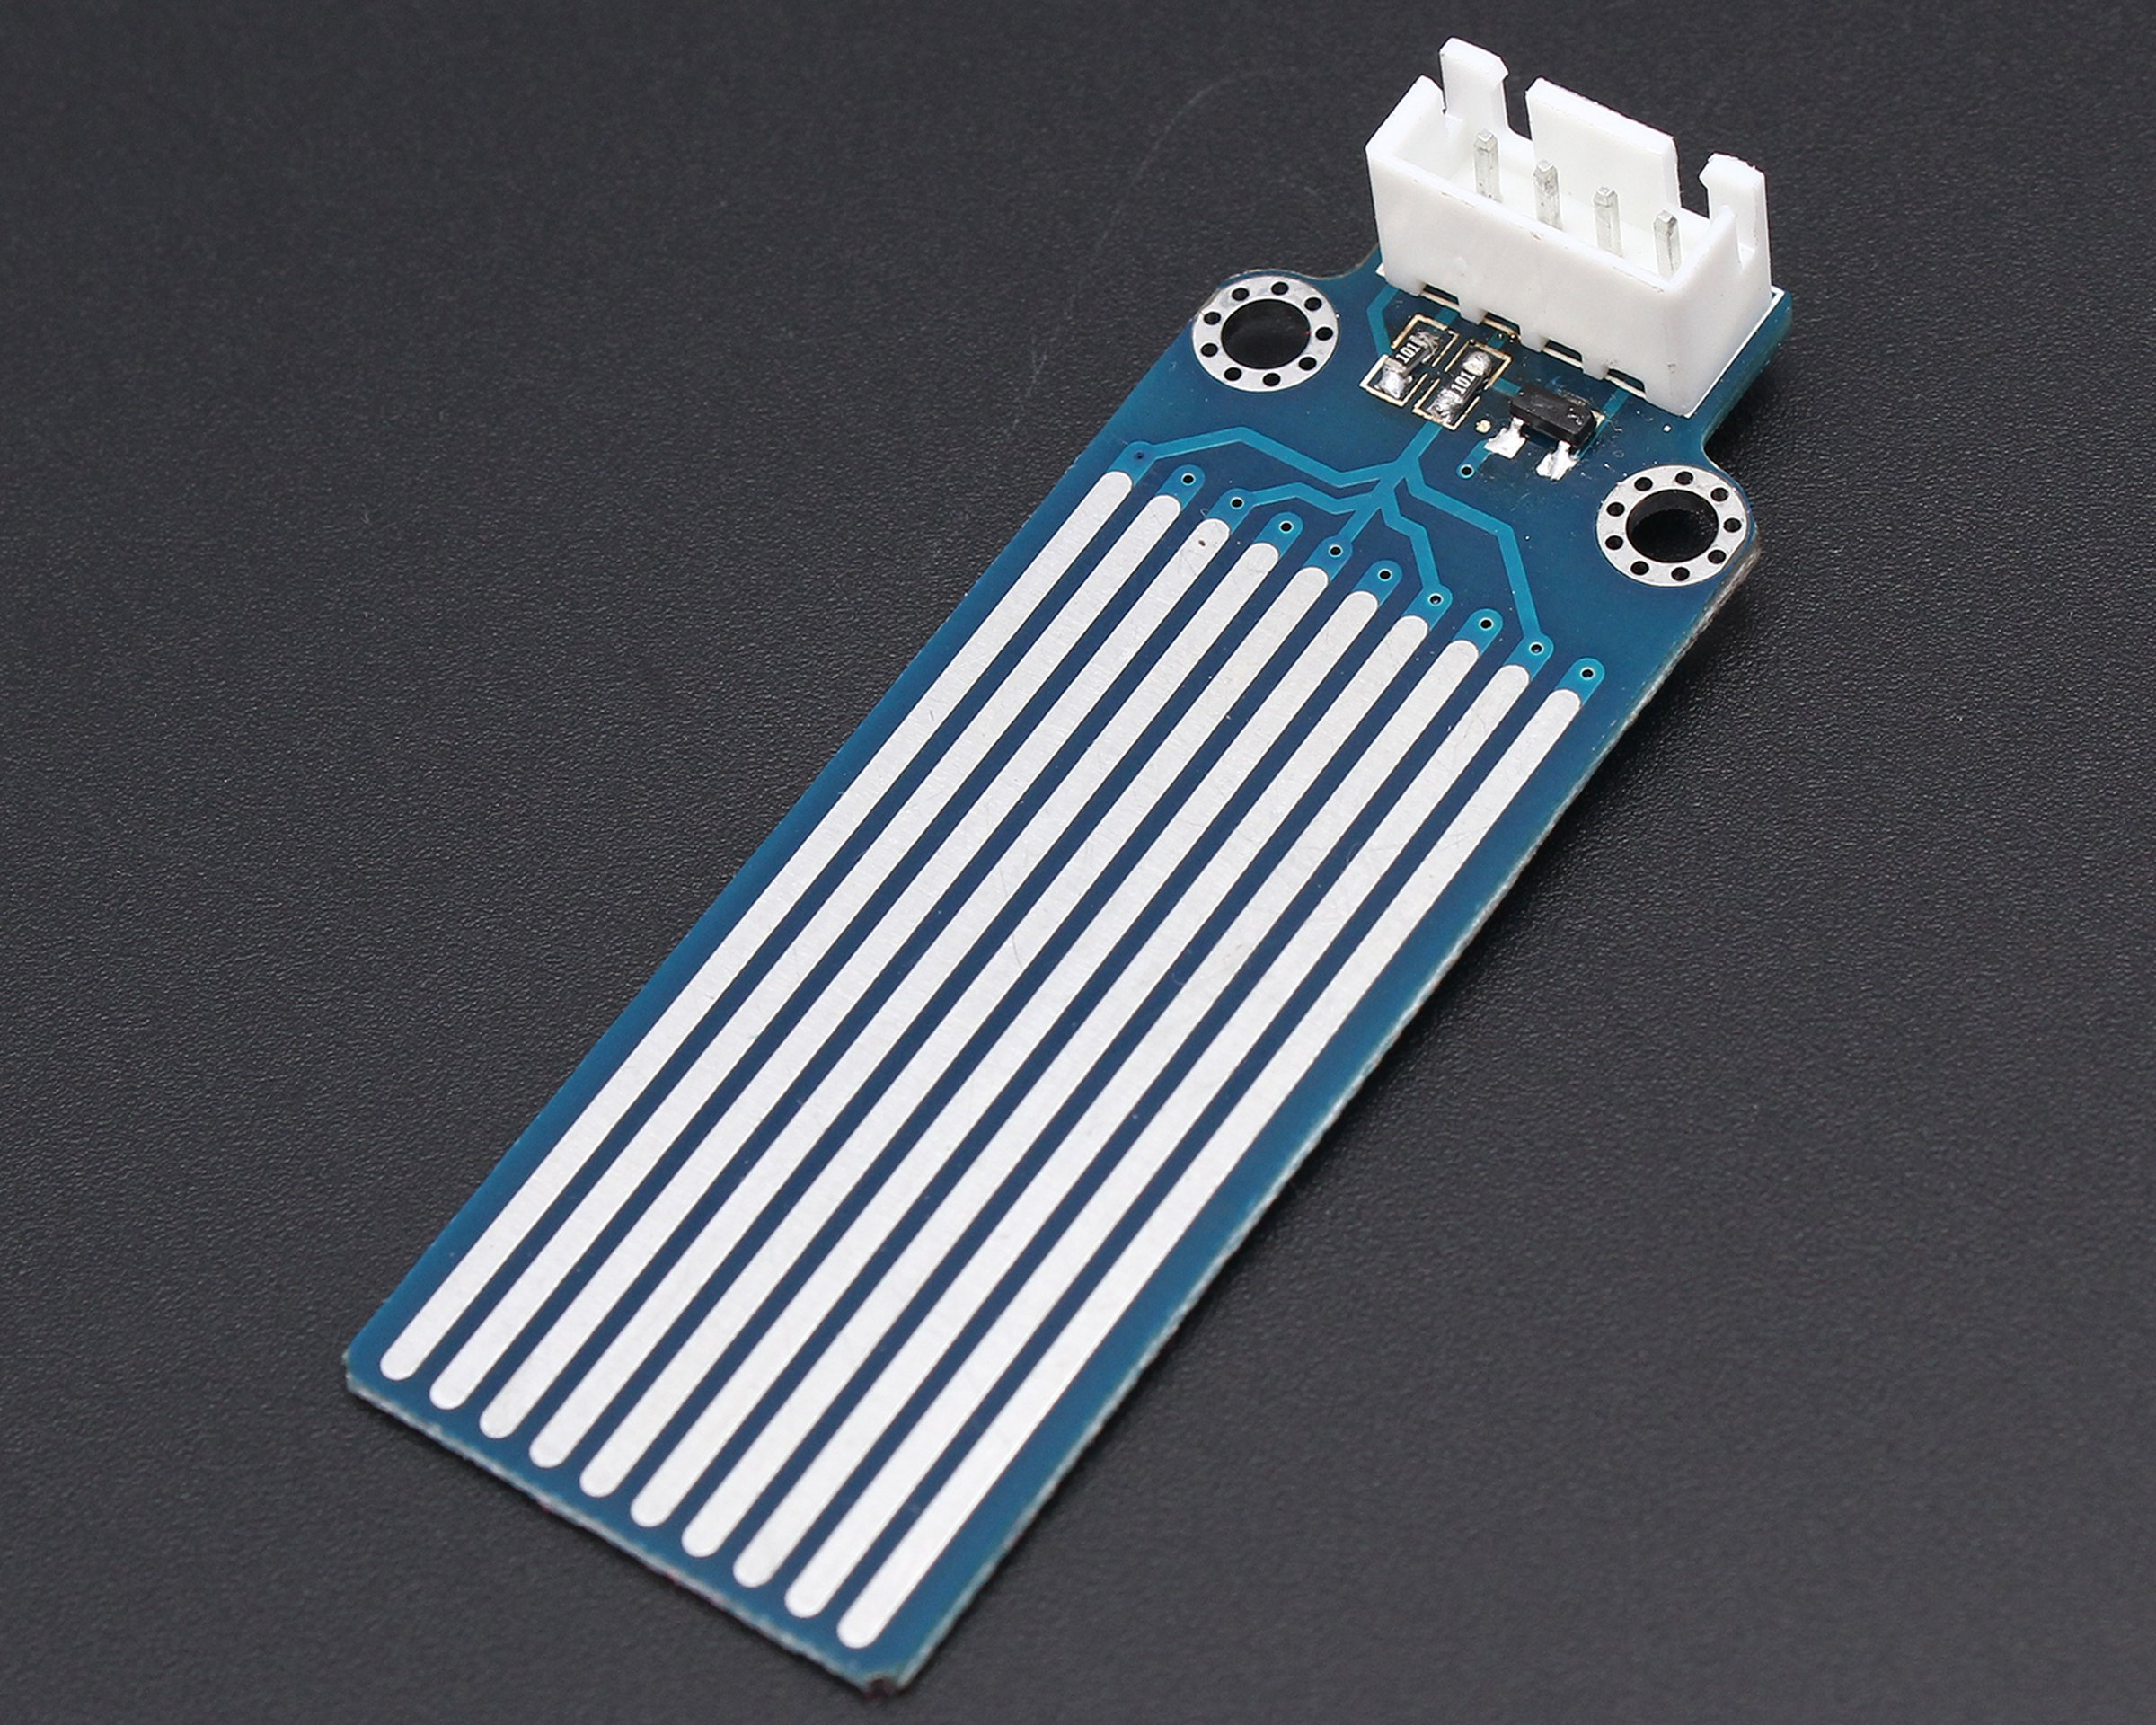 Water Level Sensor Module For Arduino3258 From Icstation On Tindie Arduino Controller Indicator 2